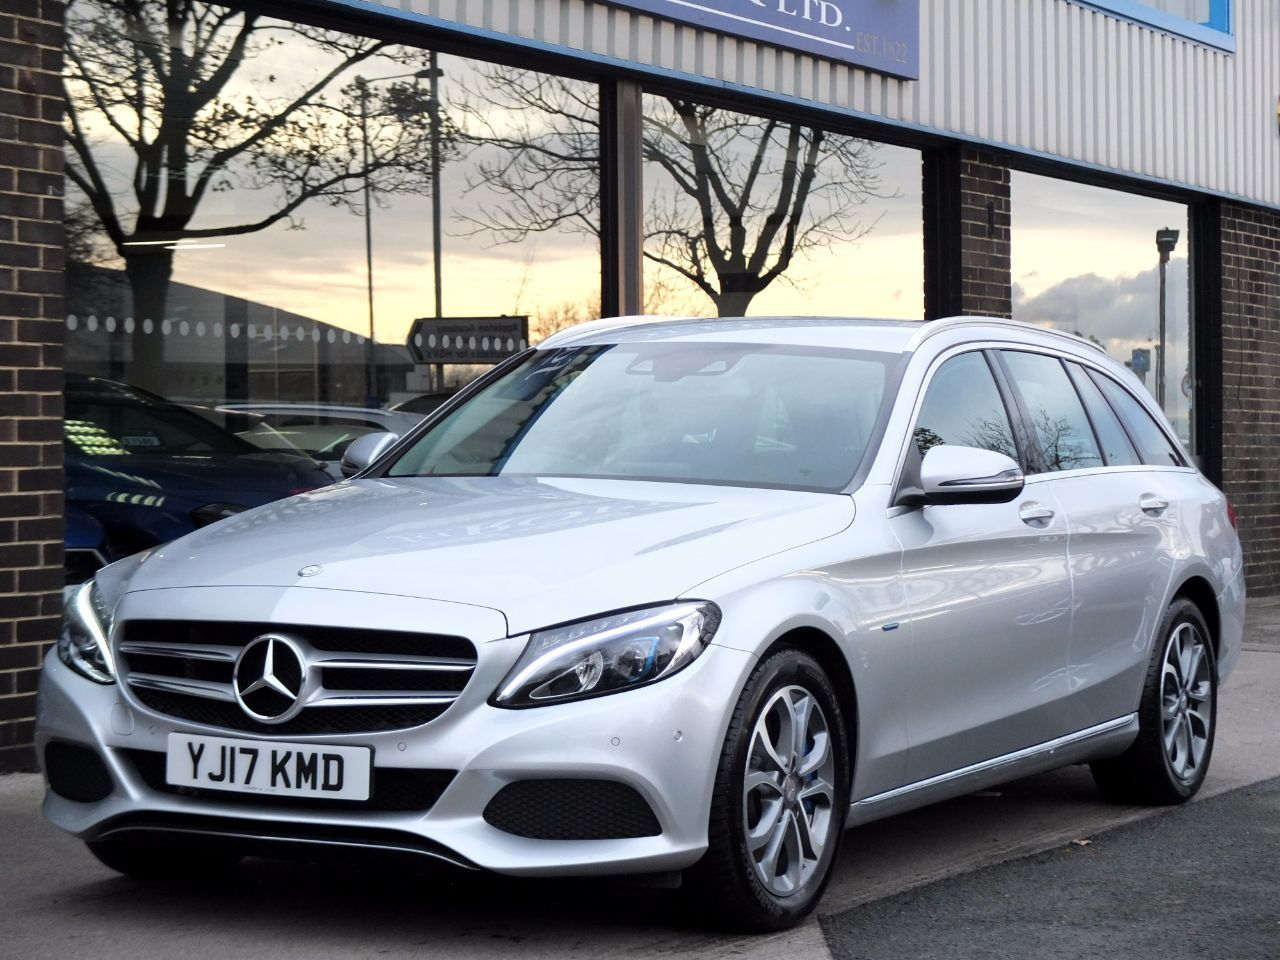 Mercedes-Benz C Class 2.0 C350e Sport PHEV (Electric Plug In Hybrid) Estate Auto Estate Hybrid Iridium Silver MetallicMercedes-Benz C Class 2.0 C350e Sport PHEV (Electric Plug In Hybrid) Estate Auto Estate Hybrid Iridium Silver Metallic at fa Roper Ltd Bradford